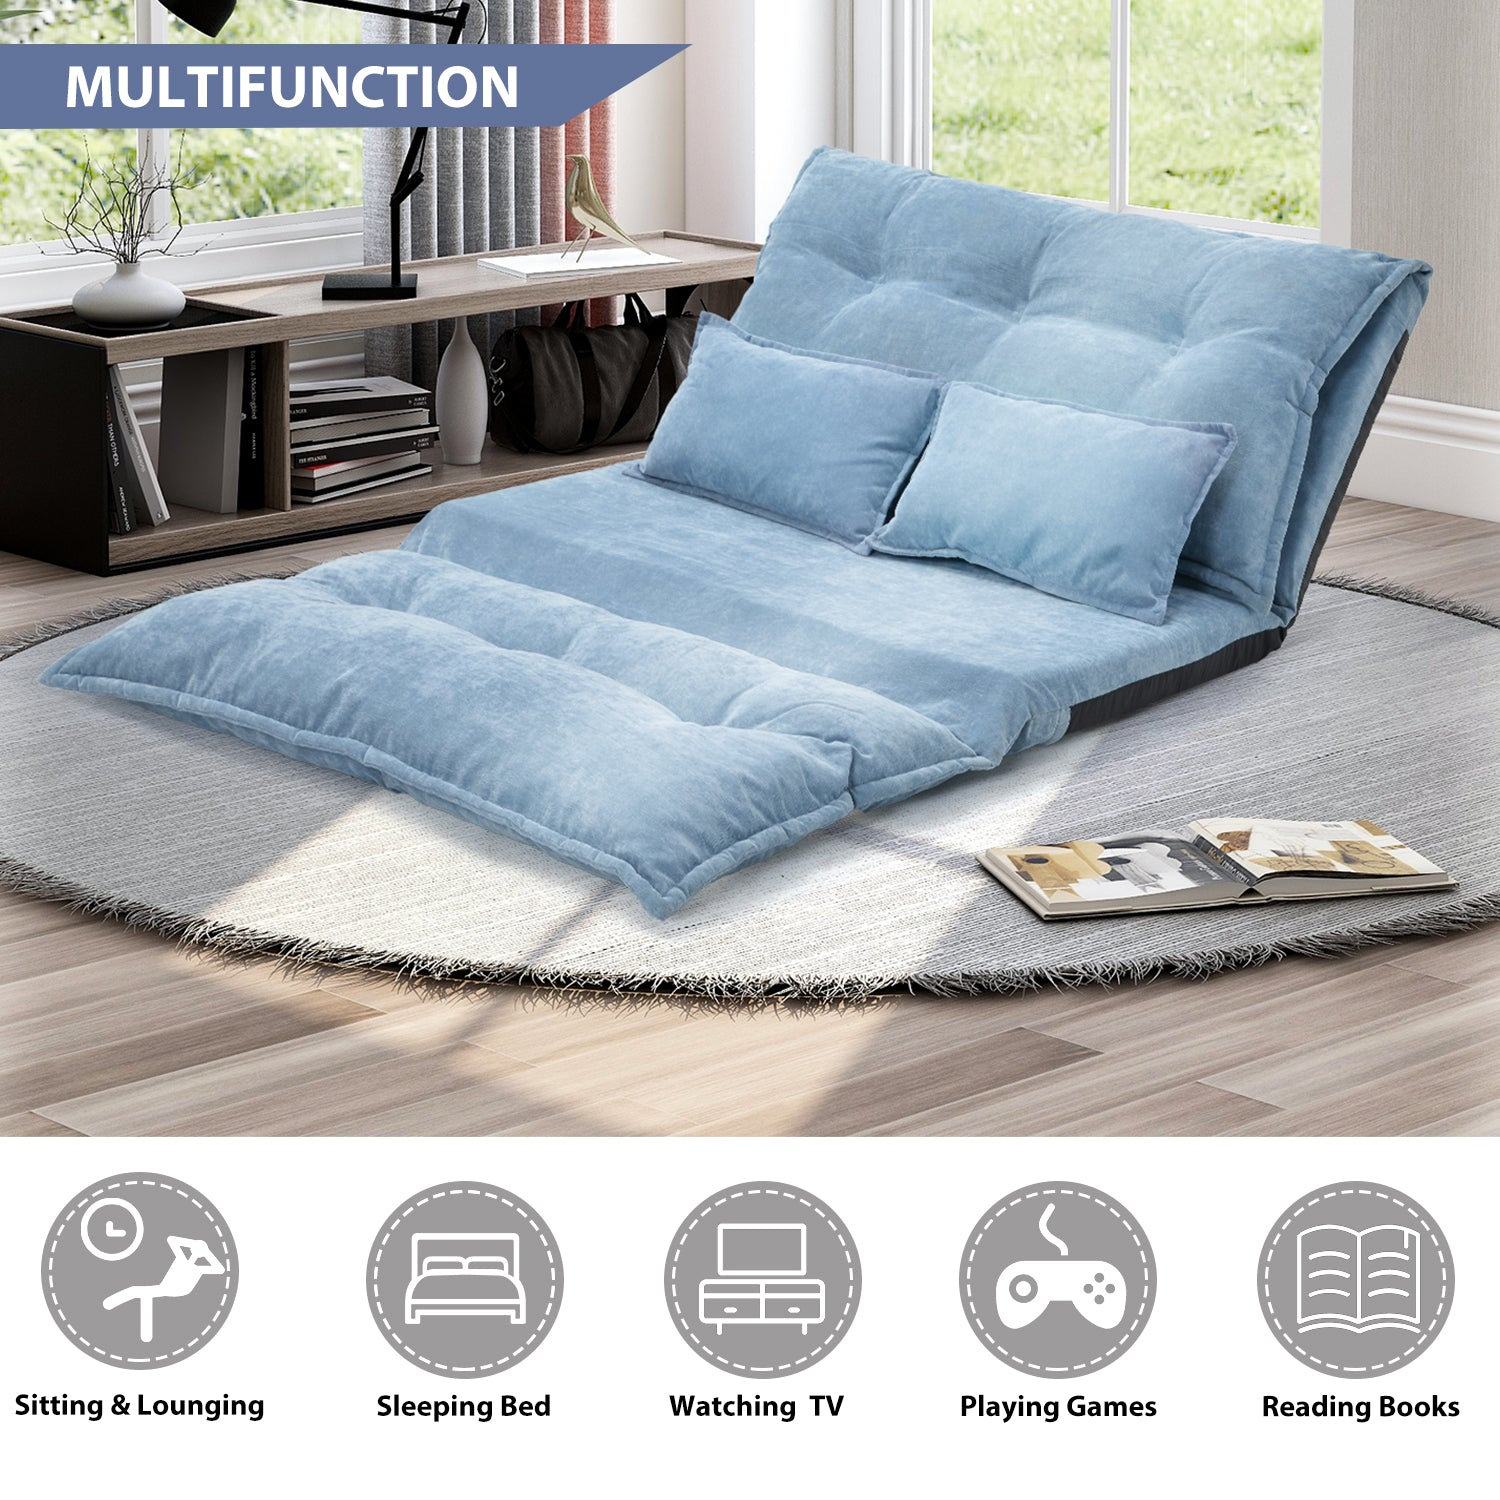 Light Steel Blue Floor Chair Adjustable Sofa Bed Lounge Floor Mattress Lazy Man Couch with Two Pillows BH194102 BH008064